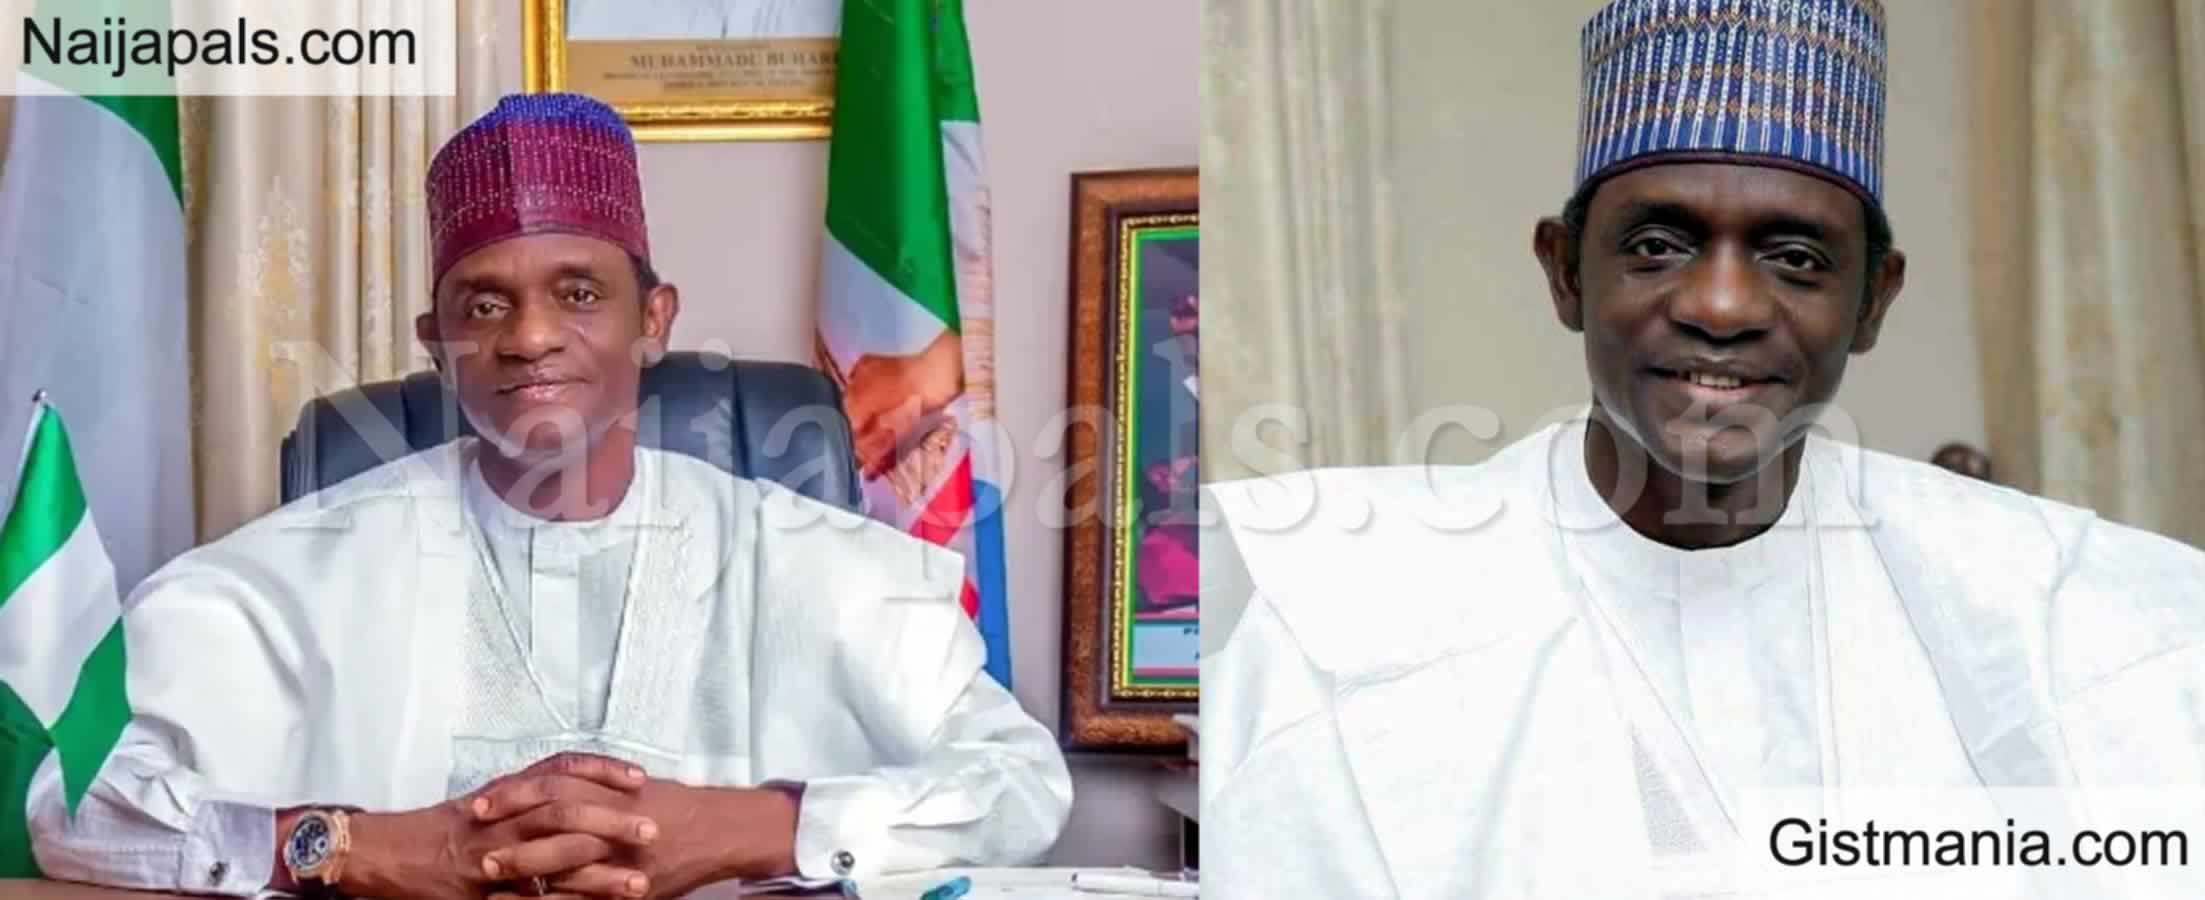 "<img alt='.' class='lazyload' data-src='https://img.gistmania.com/emot/photo.png' /> <b>""I Spend Three Days a Month In Yobe"" - Governor Mai Mala Buni Slam Critics</b>"